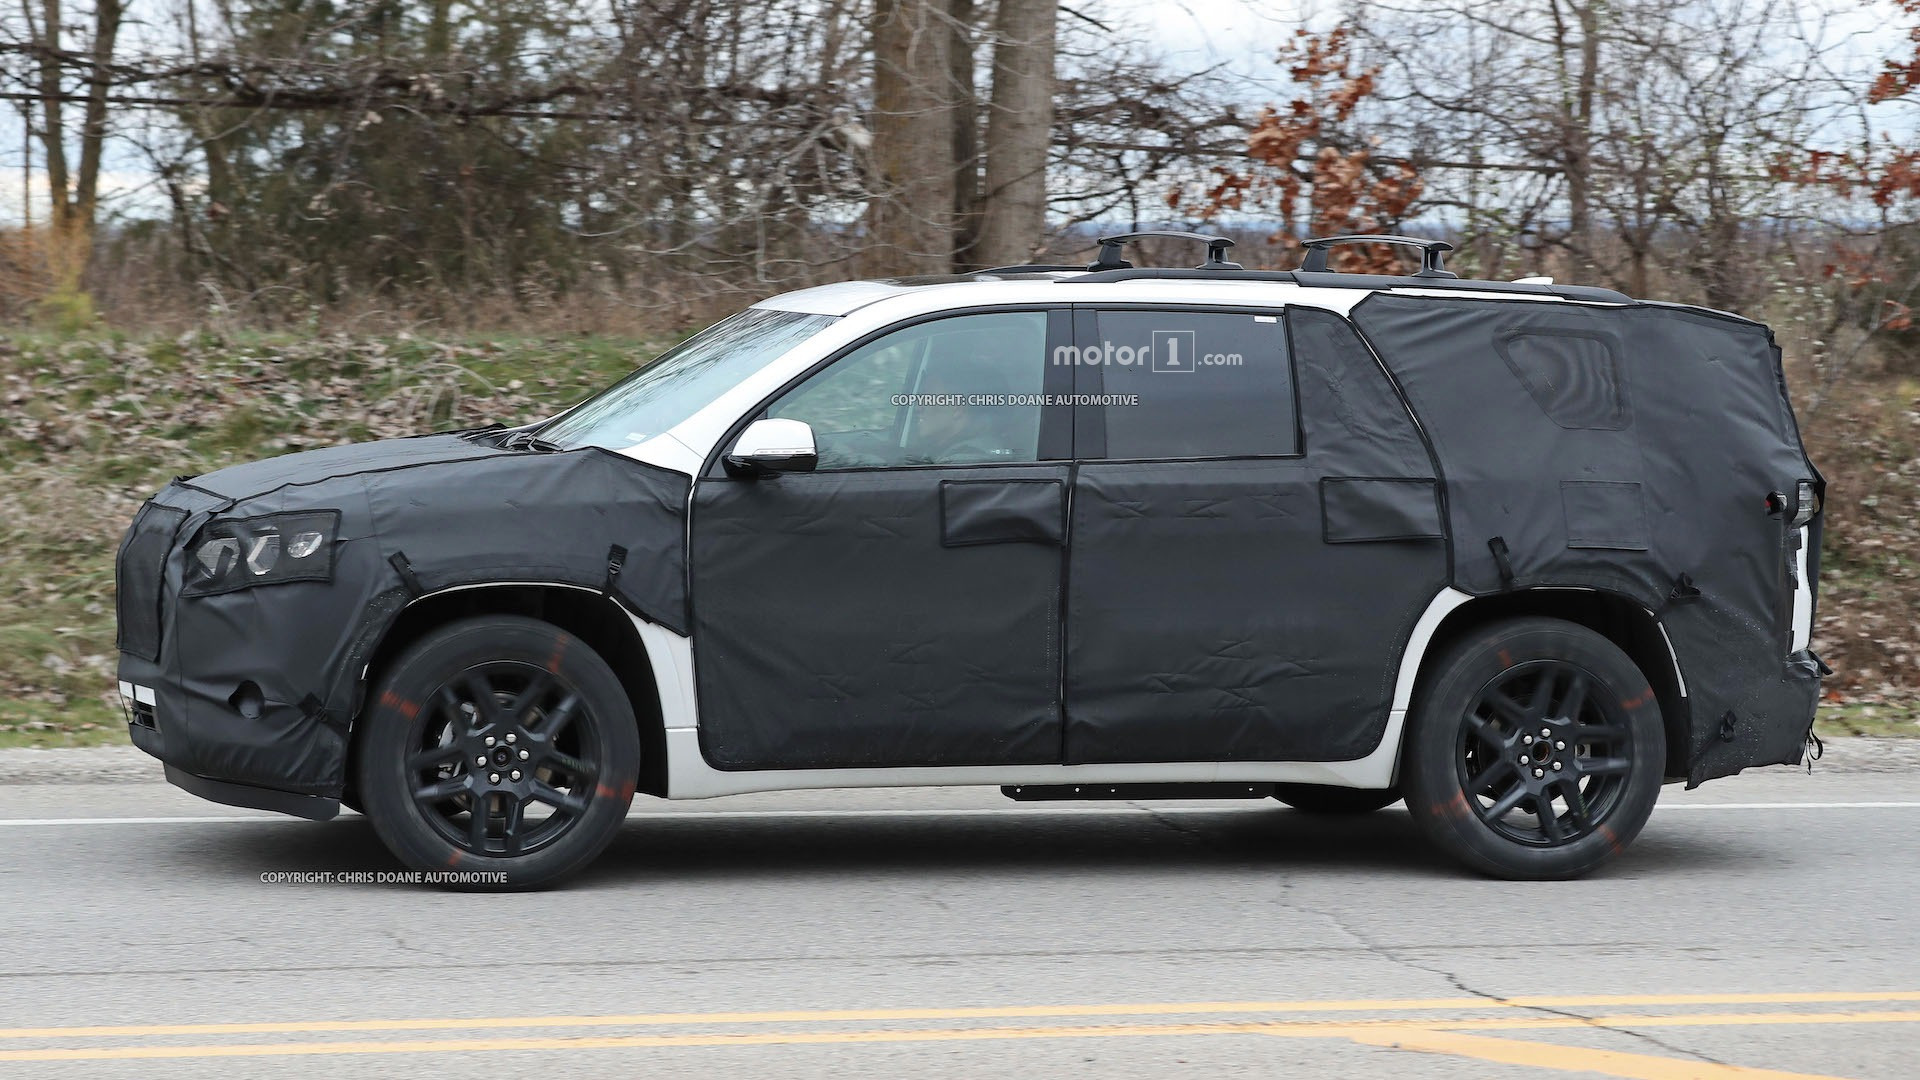 2018-chevy-cuv-spy-photos-8